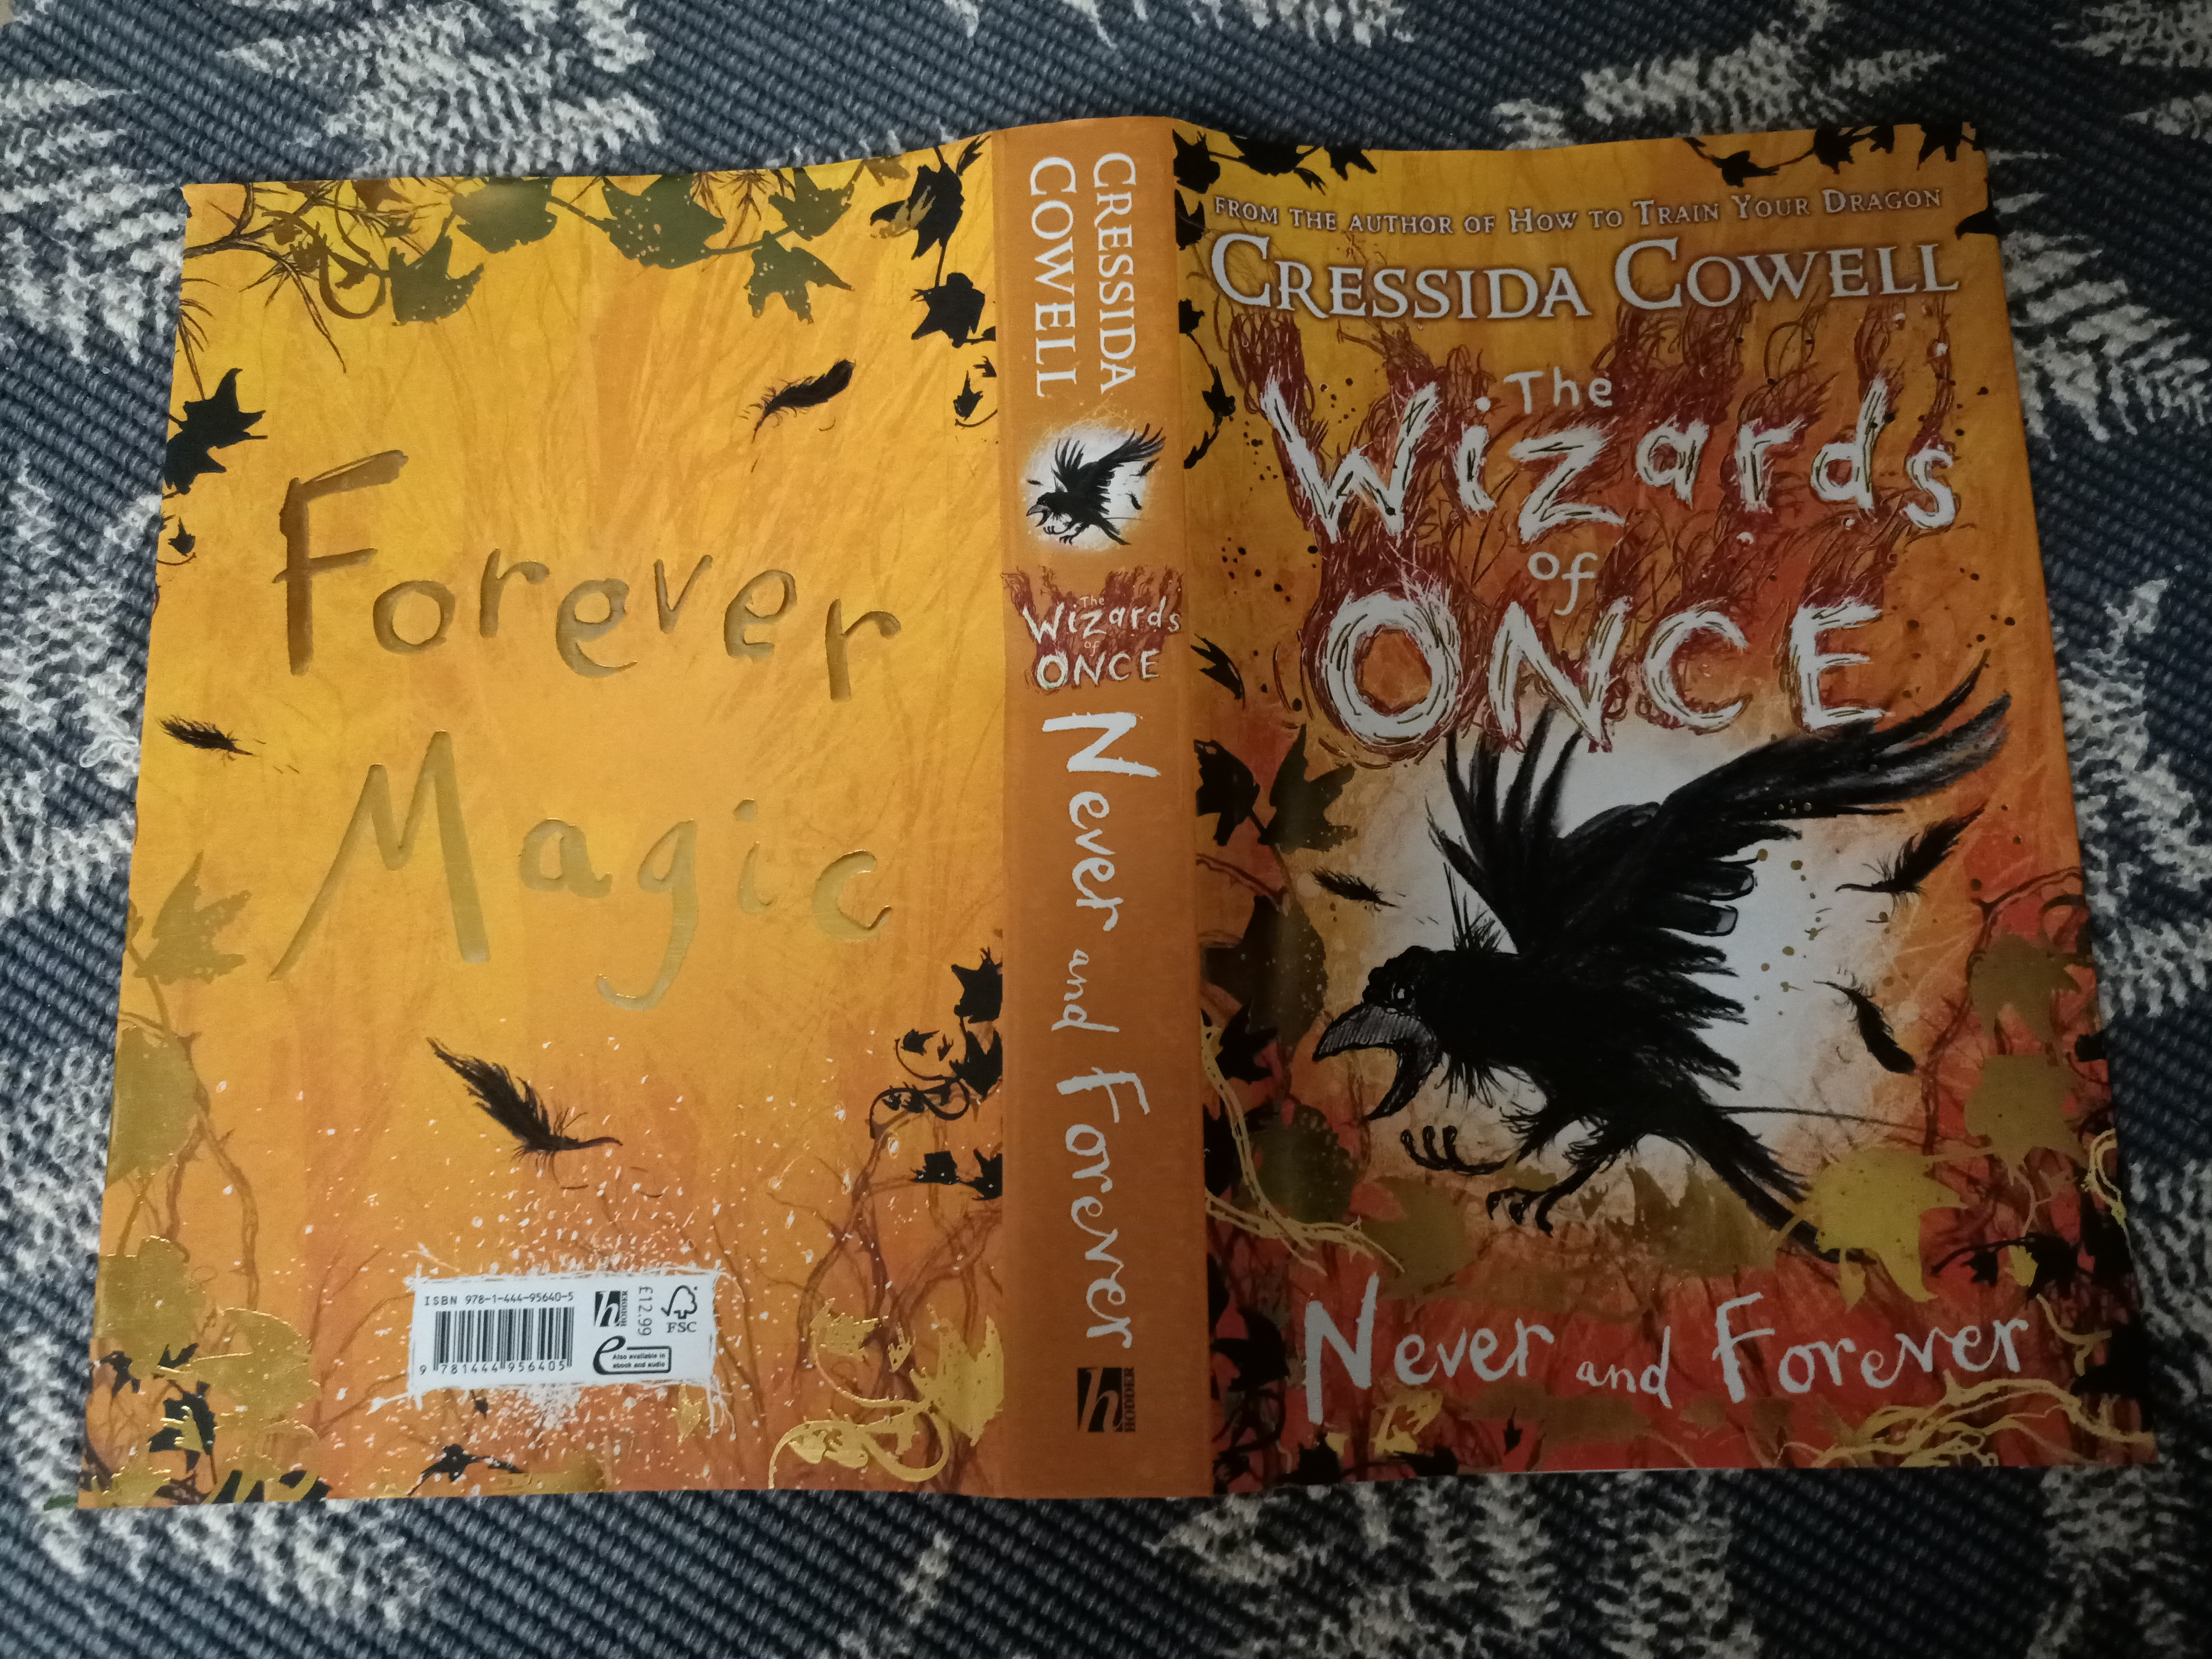 The Wizards of Once: Never and Forever: Book 4, Wizards of Once, Orange, Yellow, Leaves, Crow, Magic, Children's Books, Quest, Journey, Friendship, Adventure, Cressida Cowell